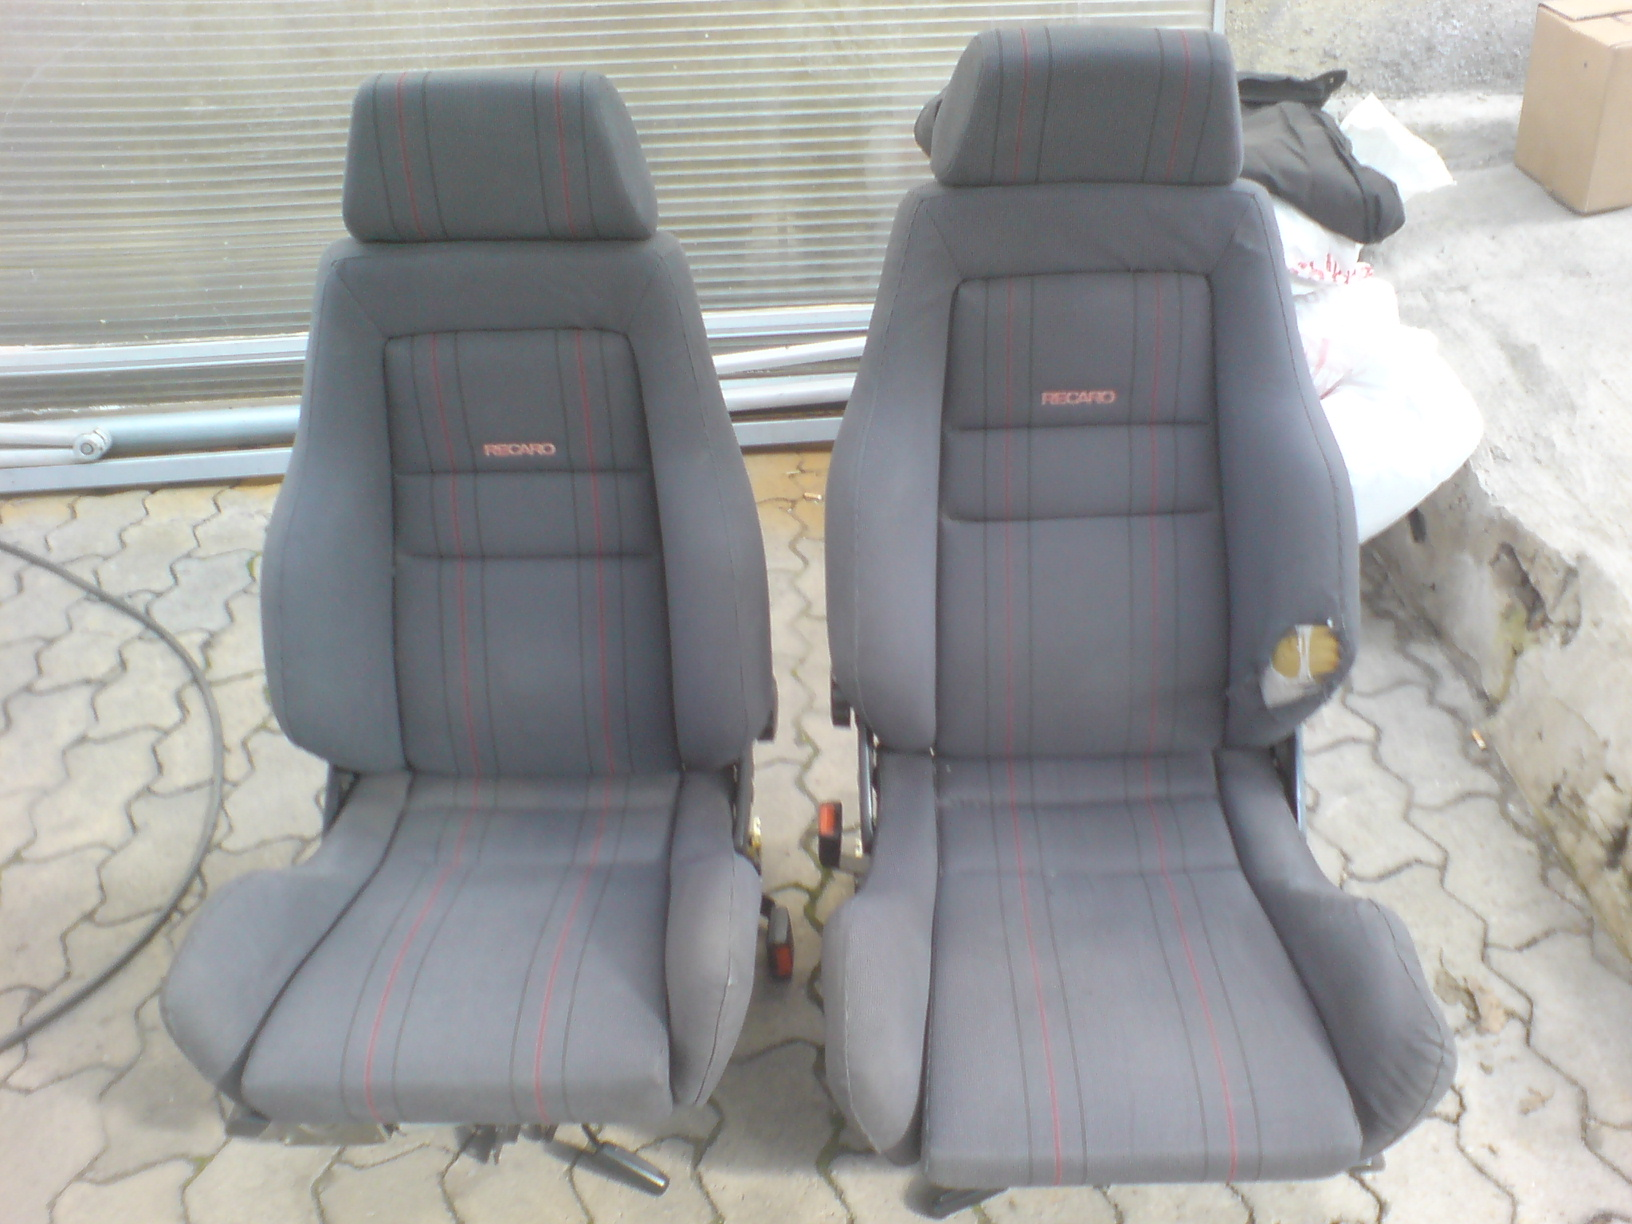 2st recaro halbschalensitze oldschool biete volkswagen. Black Bedroom Furniture Sets. Home Design Ideas